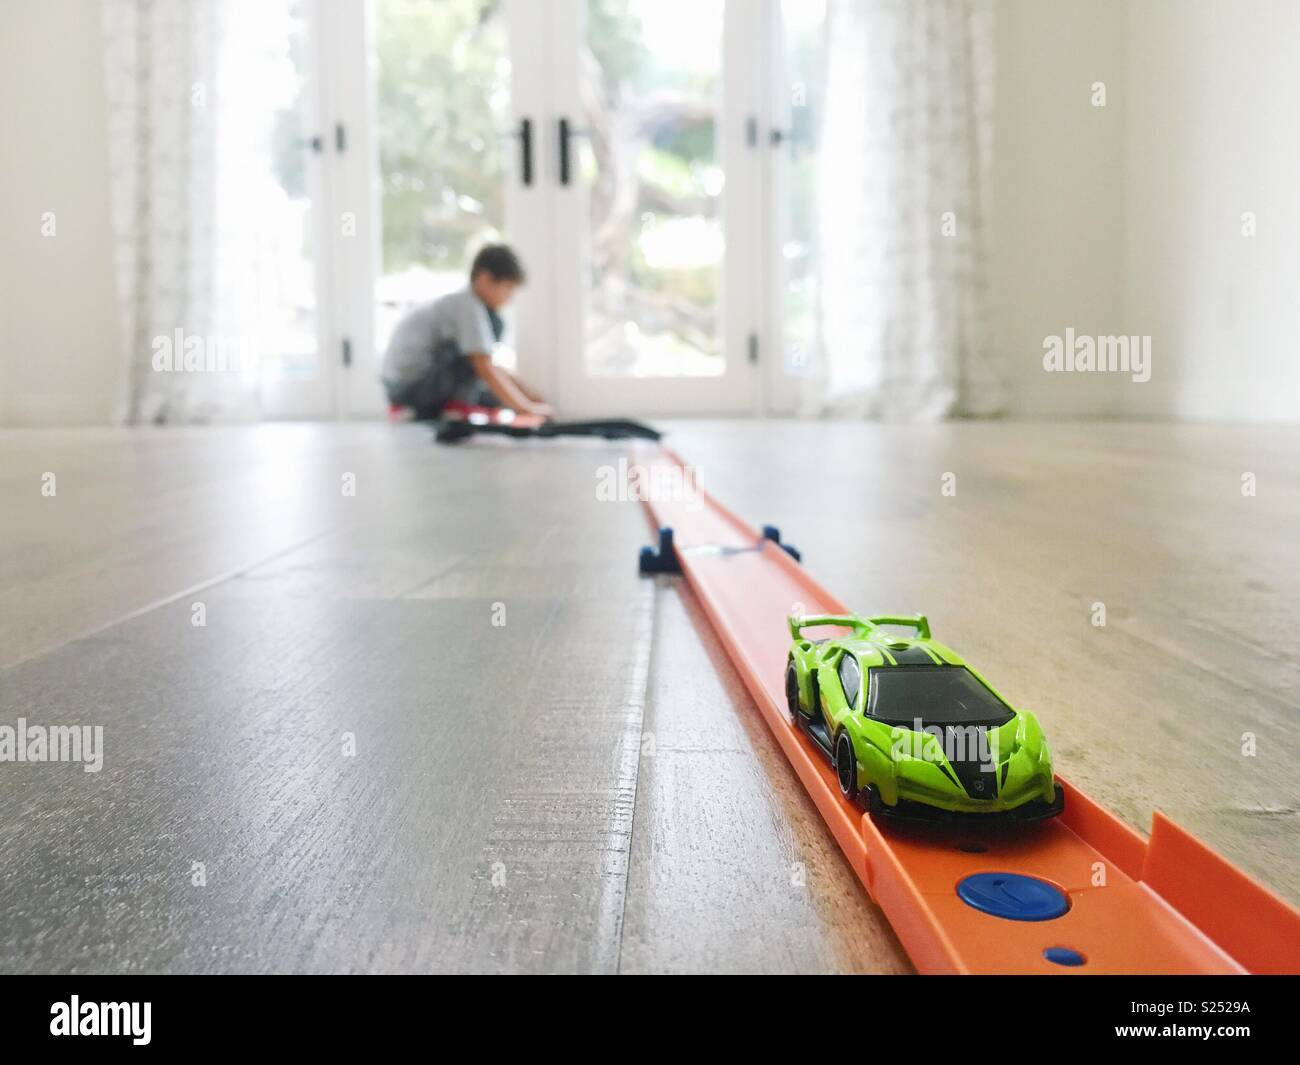 Saturday at home - Stock Image